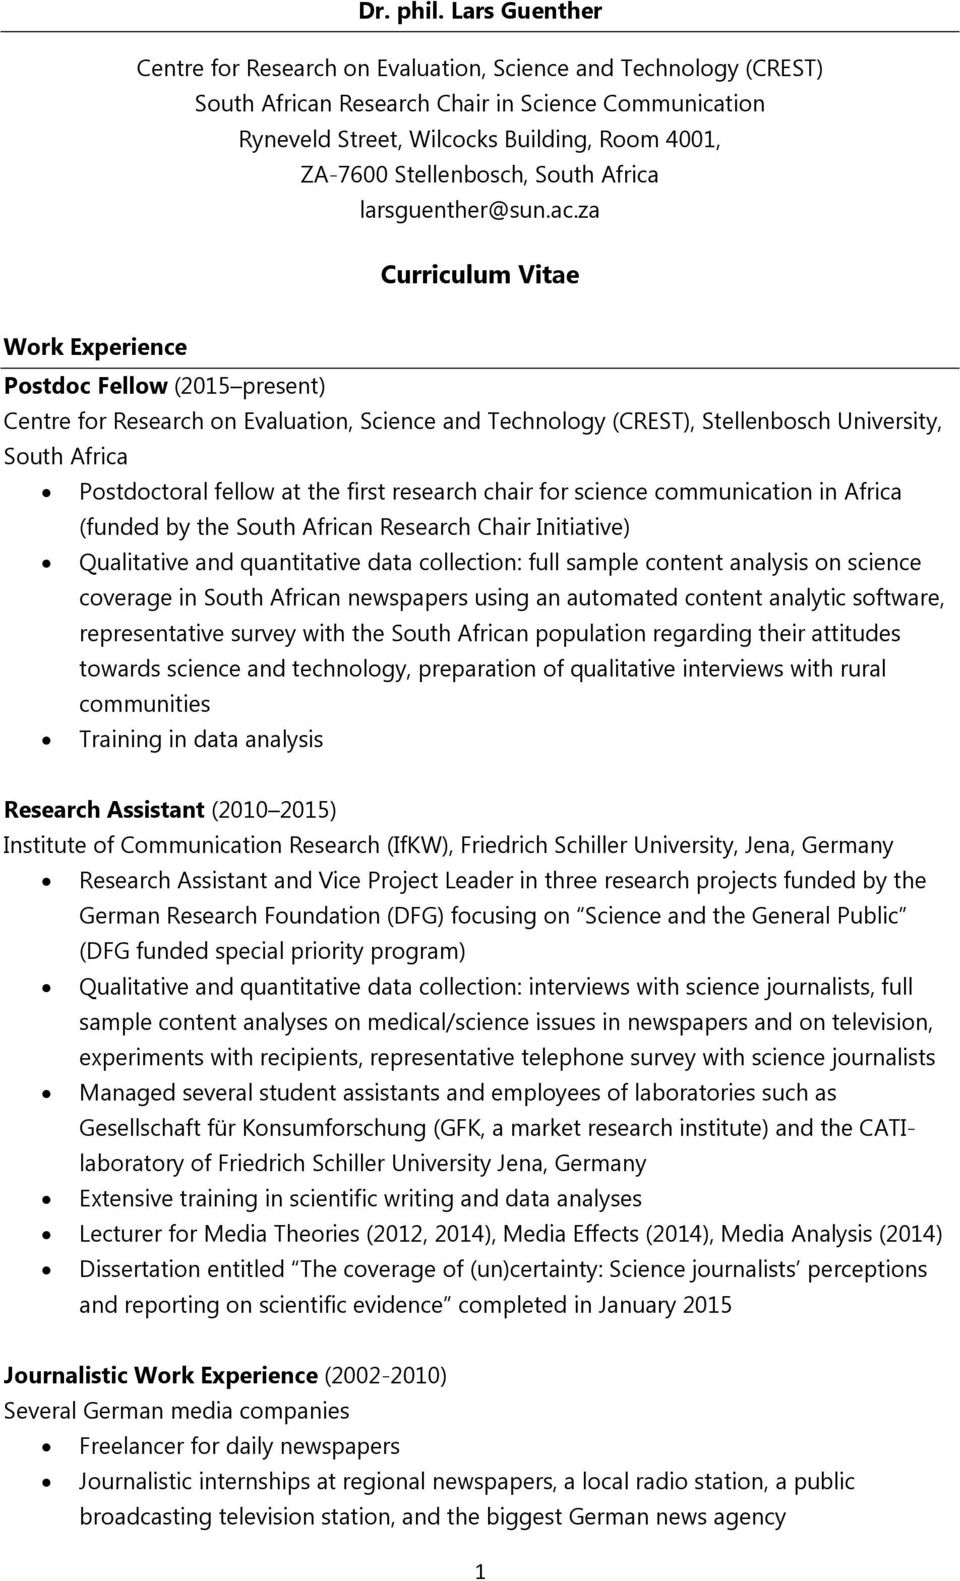 za Curriculum Vitae Work Experience Postdoc Fellow (2015 present) Centre for Research on Evaluation, Science and Technology (CREST), Stellenbosch University, South Africa Postdoctoral fellow at the